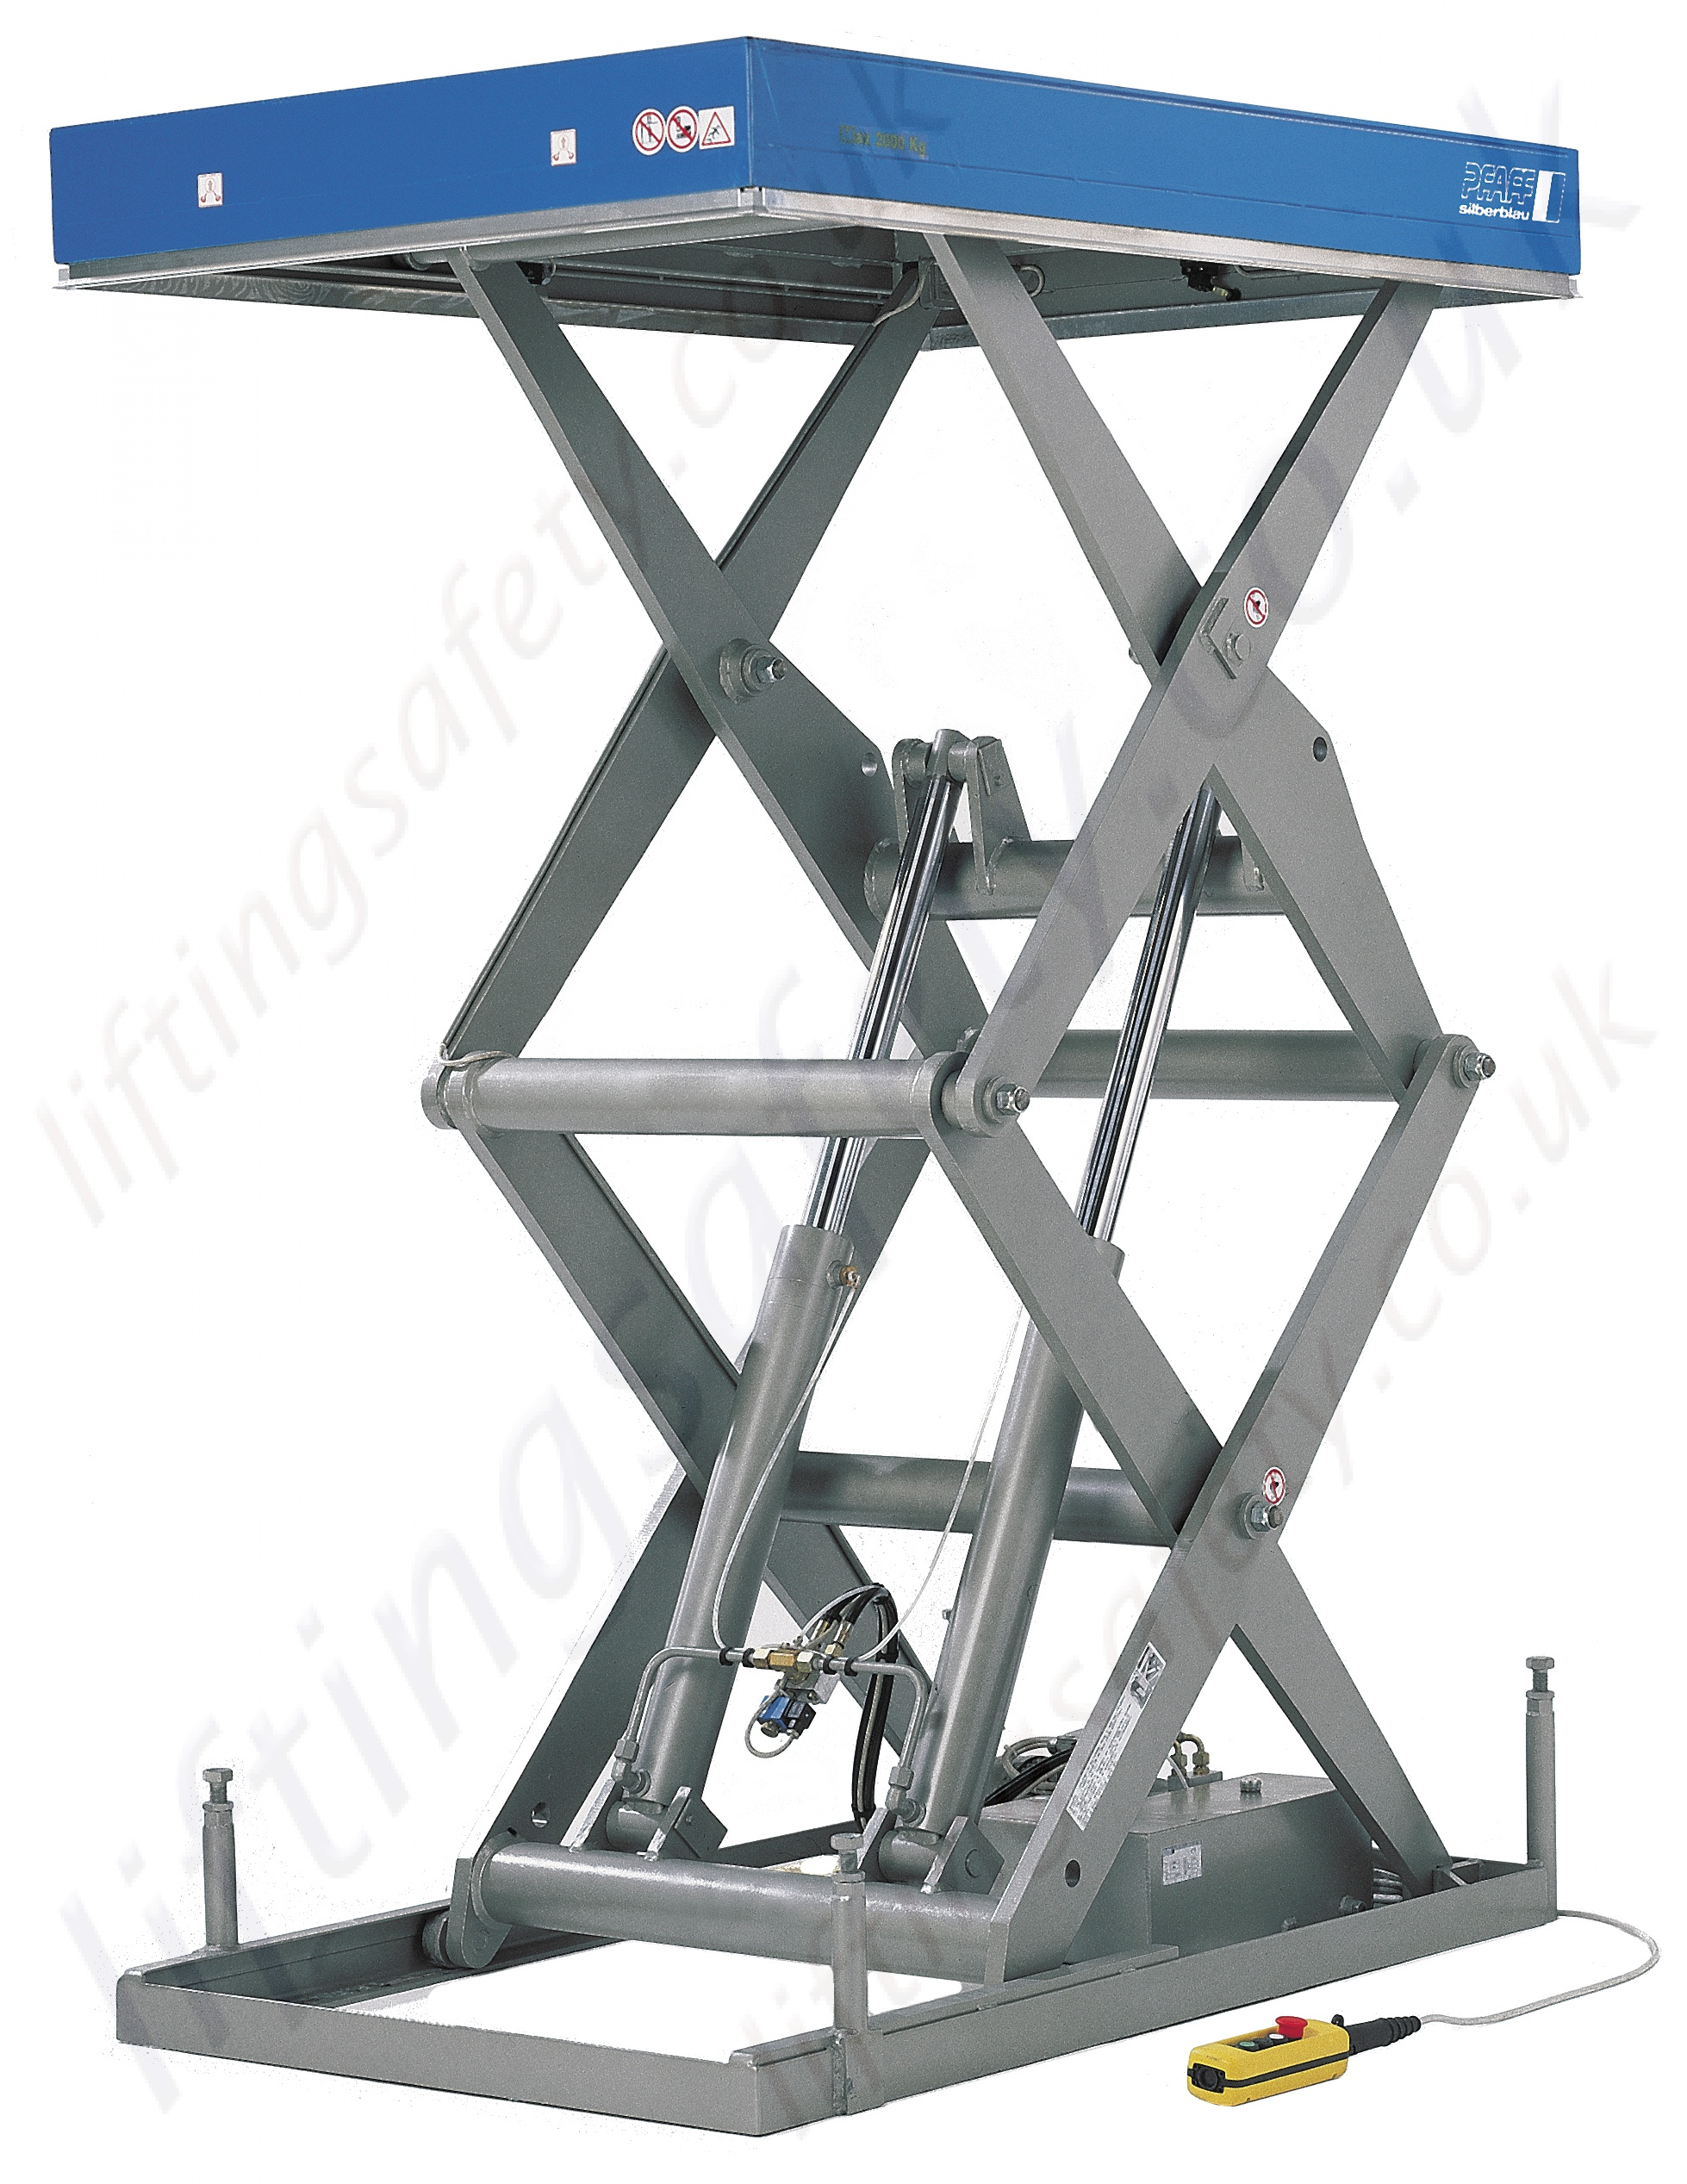 roll lift portable handling equipment for mobile rolls paper table large